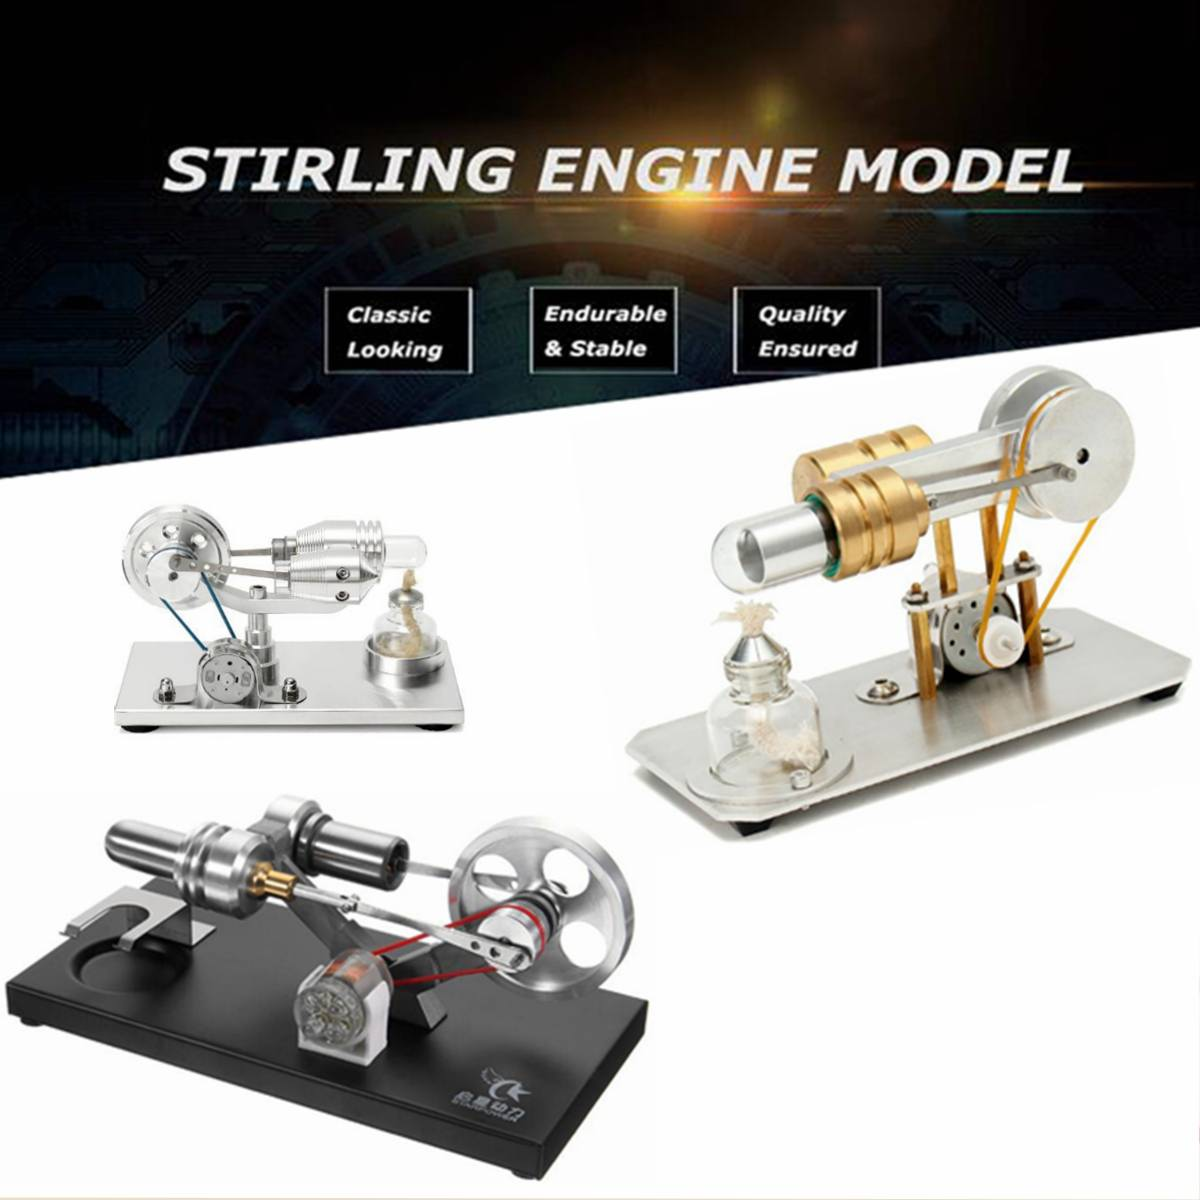 Mini Hot Air Stirling Engine Motor Model Educational Toy Kit Gift With LED Light Engine Principle Intuitive for Classroom TeachMini Hot Air Stirling Engine Motor Model Educational Toy Kit Gift With LED Light Engine Principle Intuitive for Classroom Teach